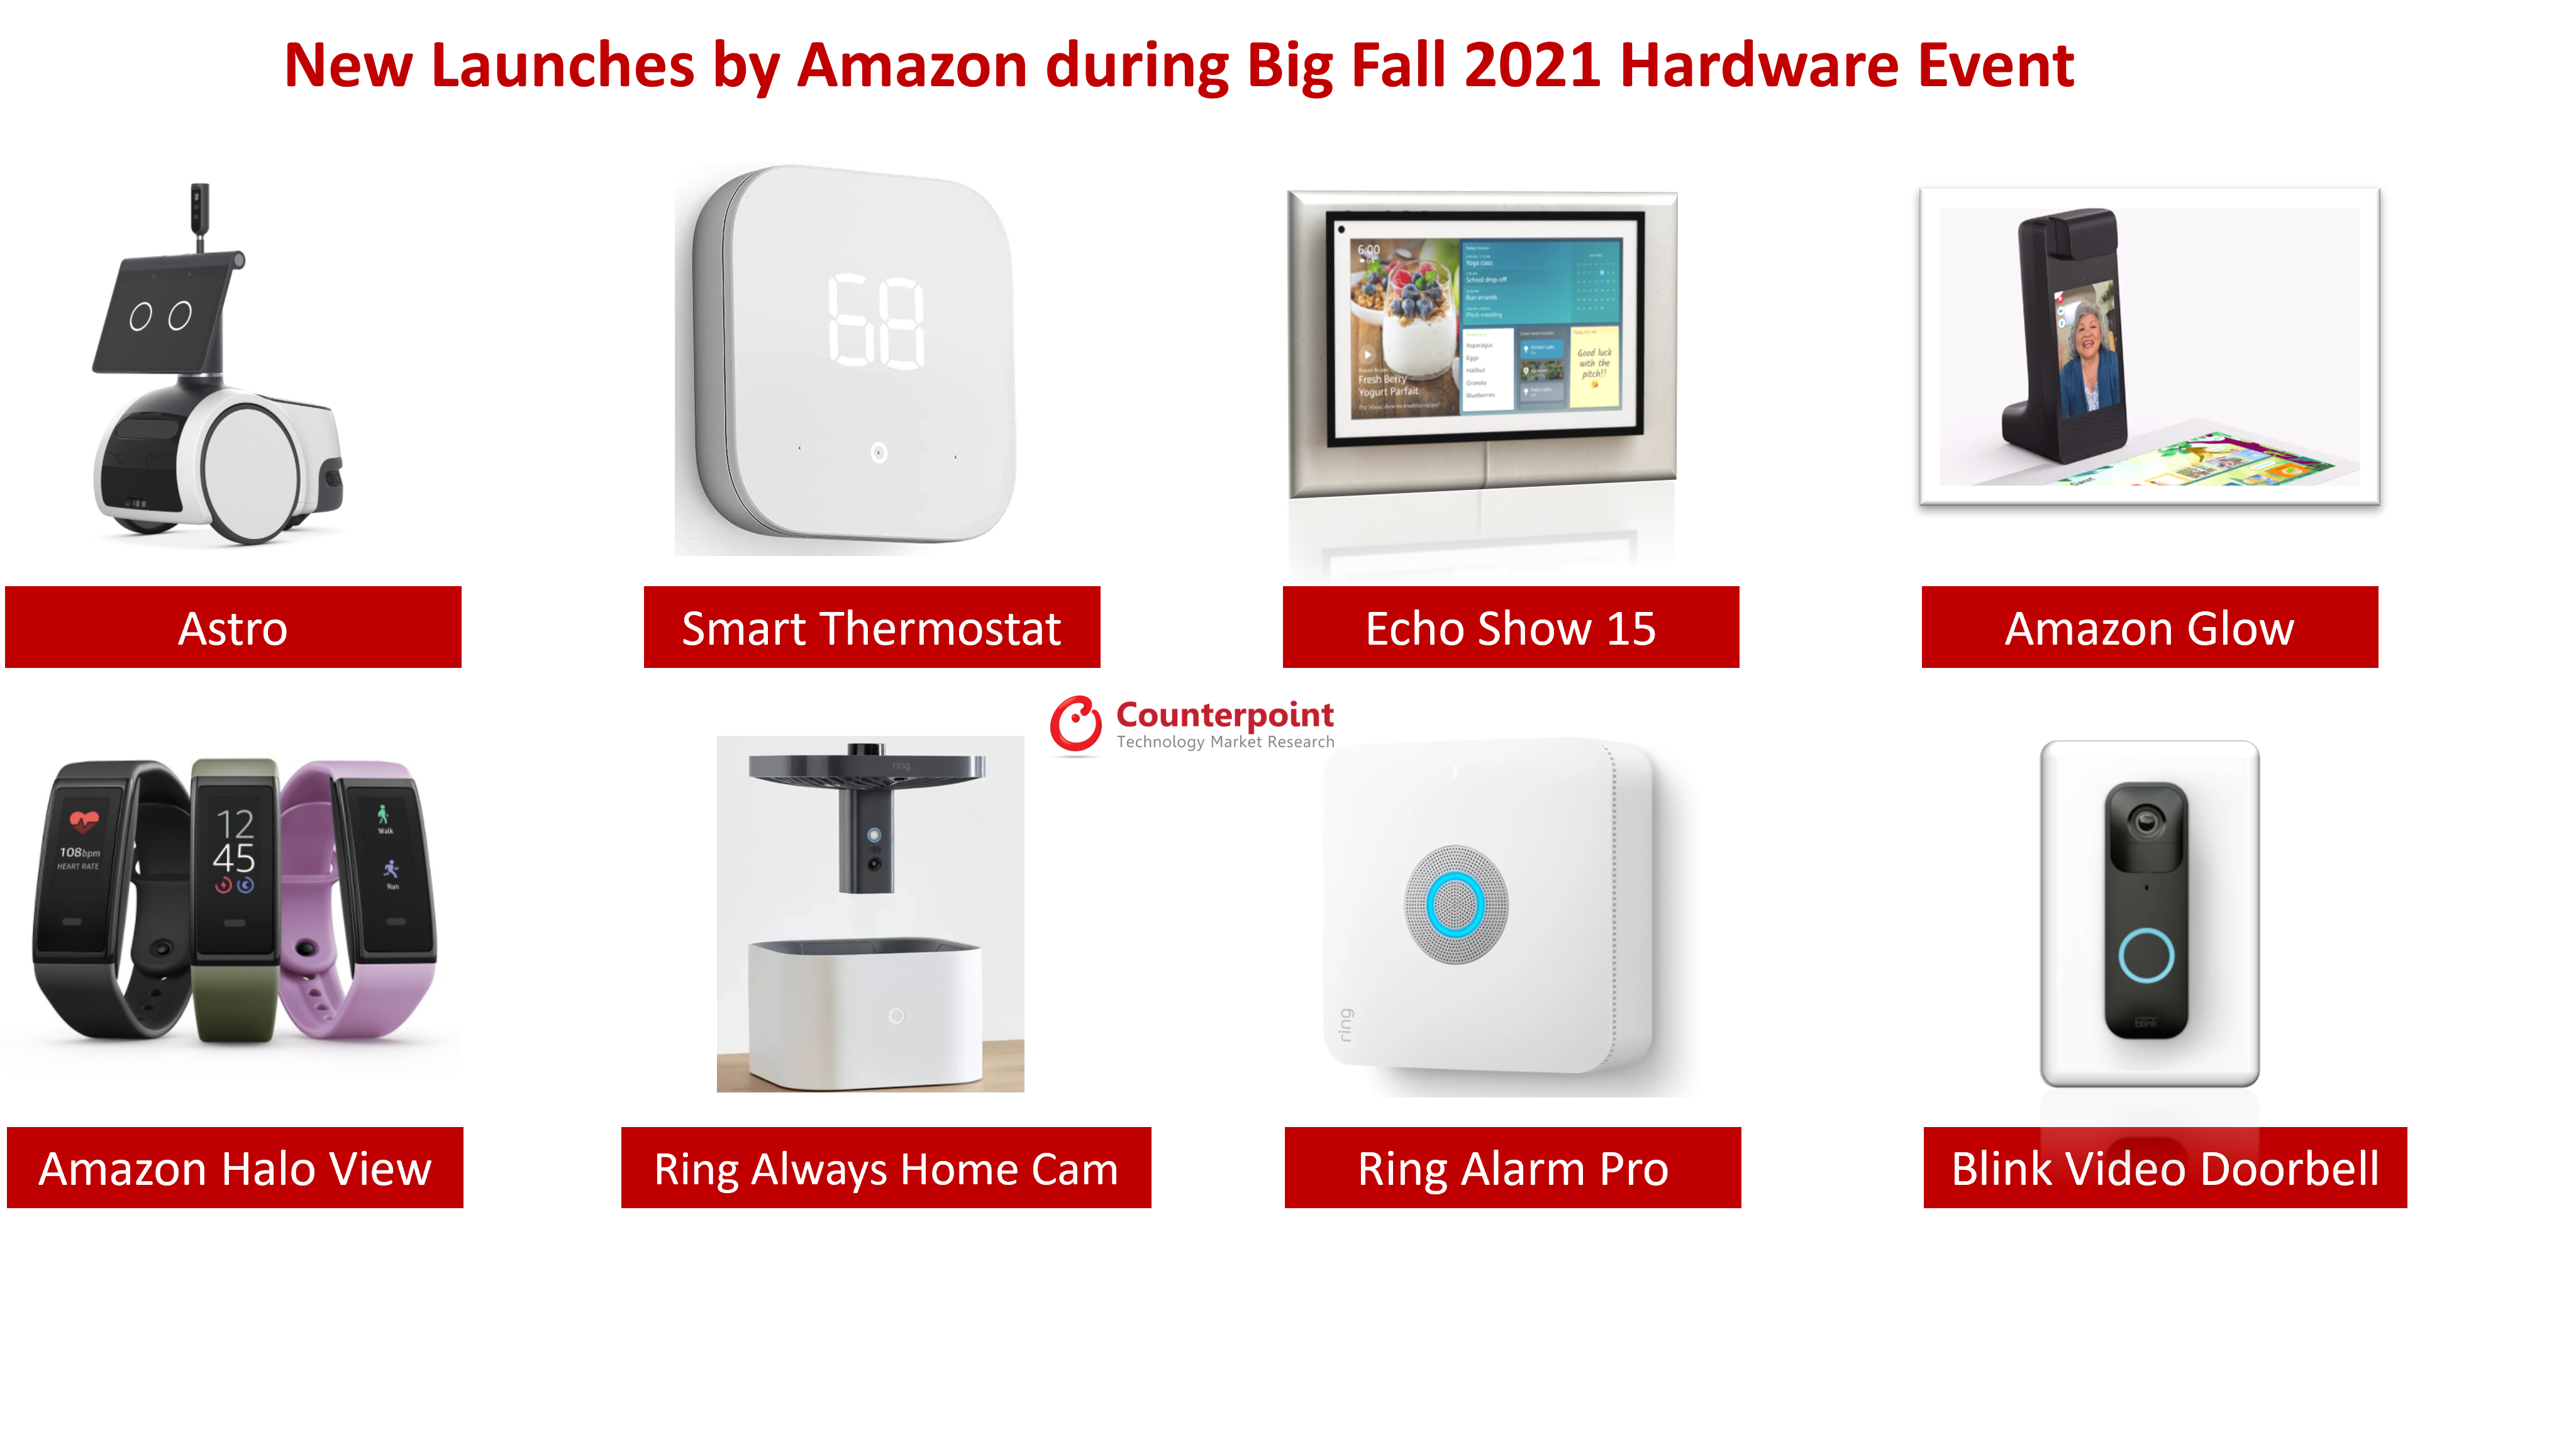 New Launches by Amazon during Big Fall 2021 Hardware Event